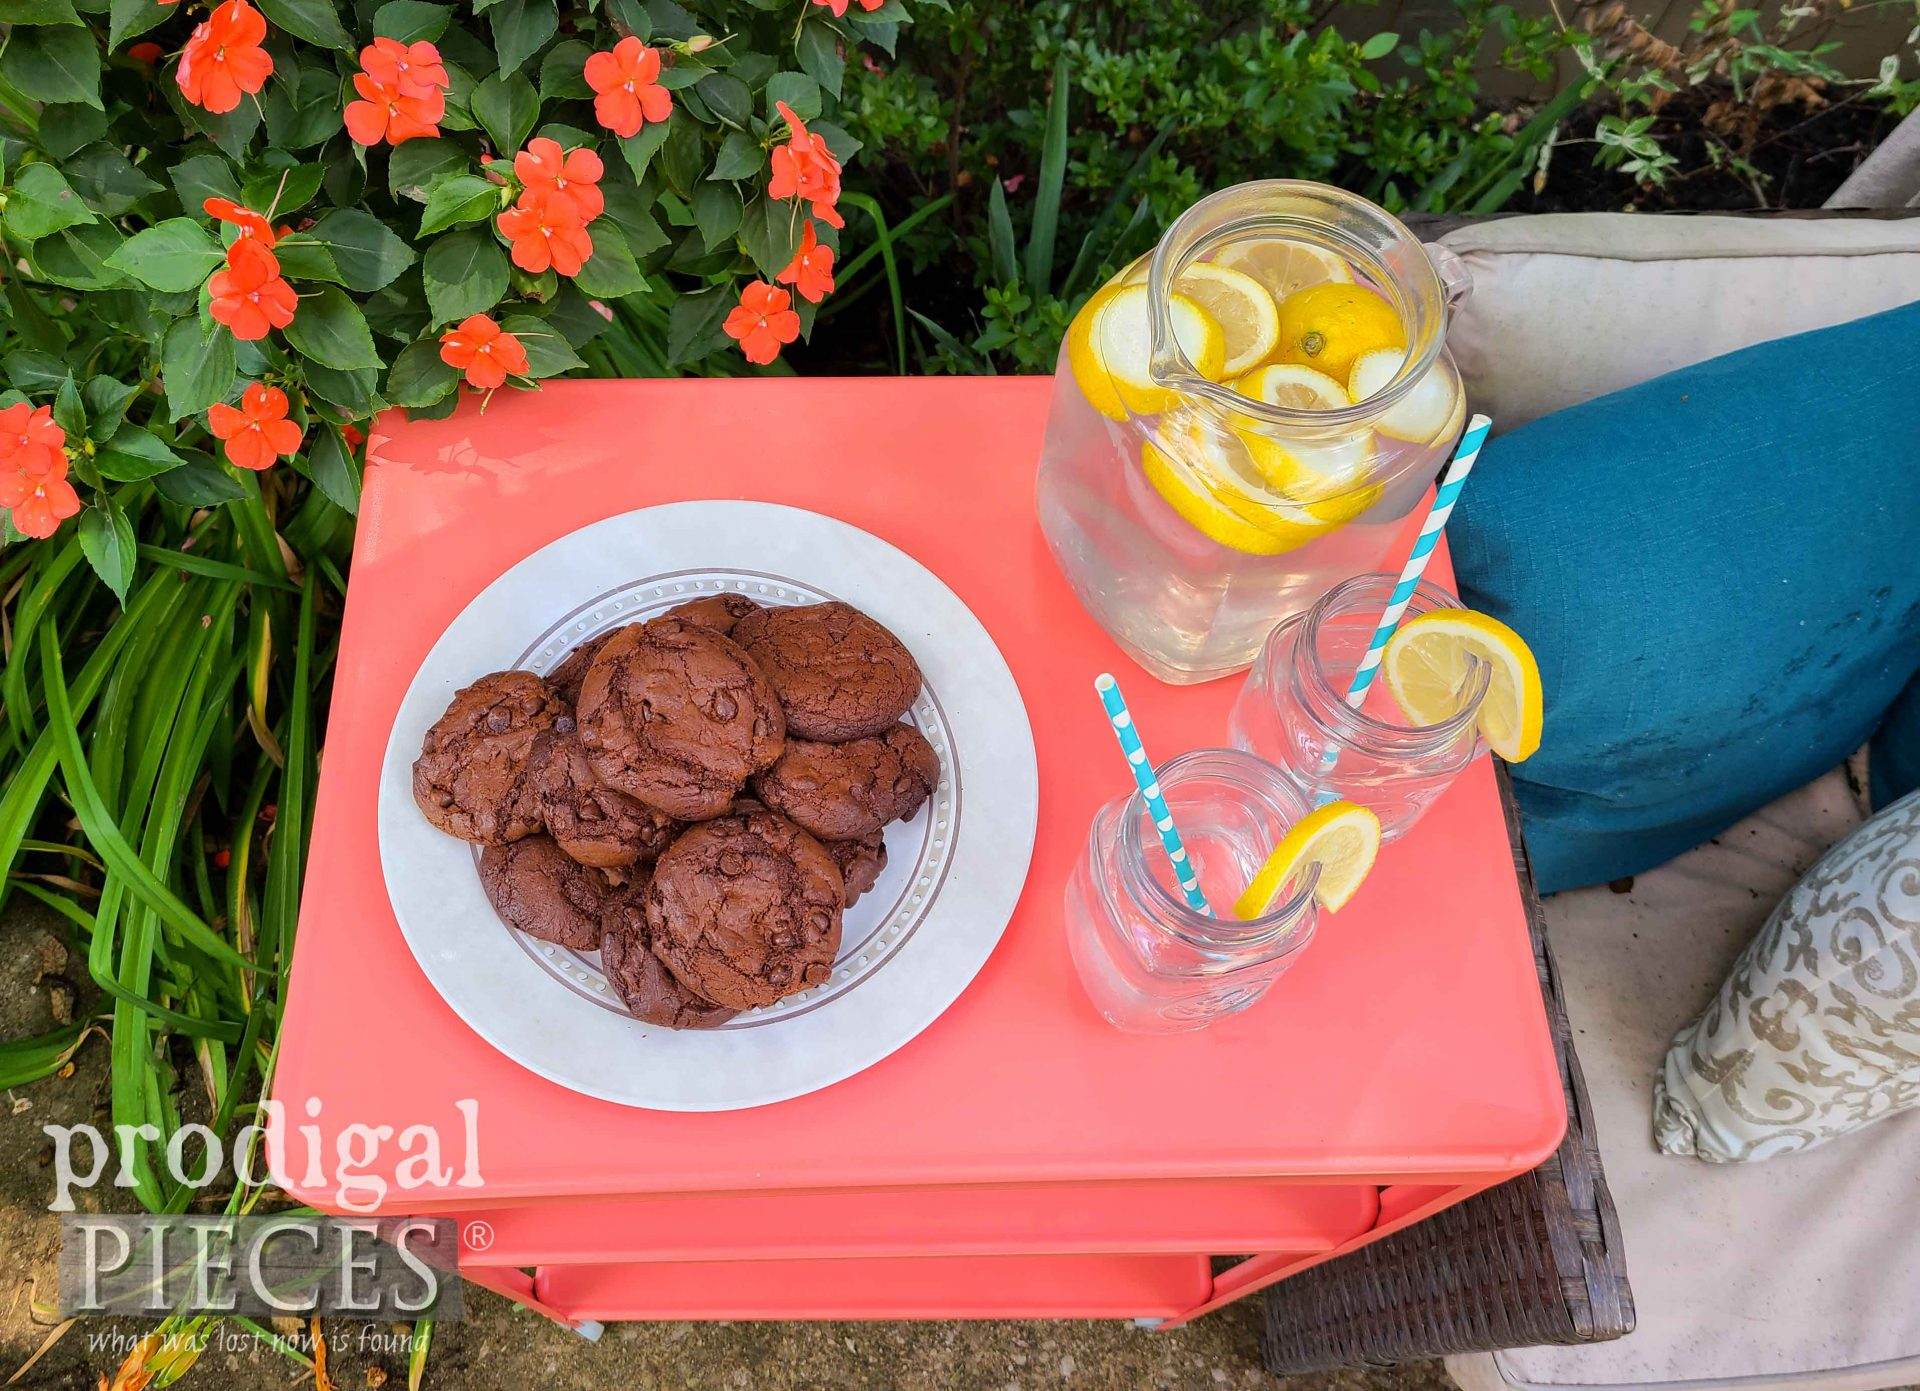 Coral Cart Top with Homemade Gluten Free Chocolate Fudge Cookies & Lemonade by Prodigal Pieces | prodigalpieces.com #prodigalpieces #food #cookies #vintage #furniture #home #patio